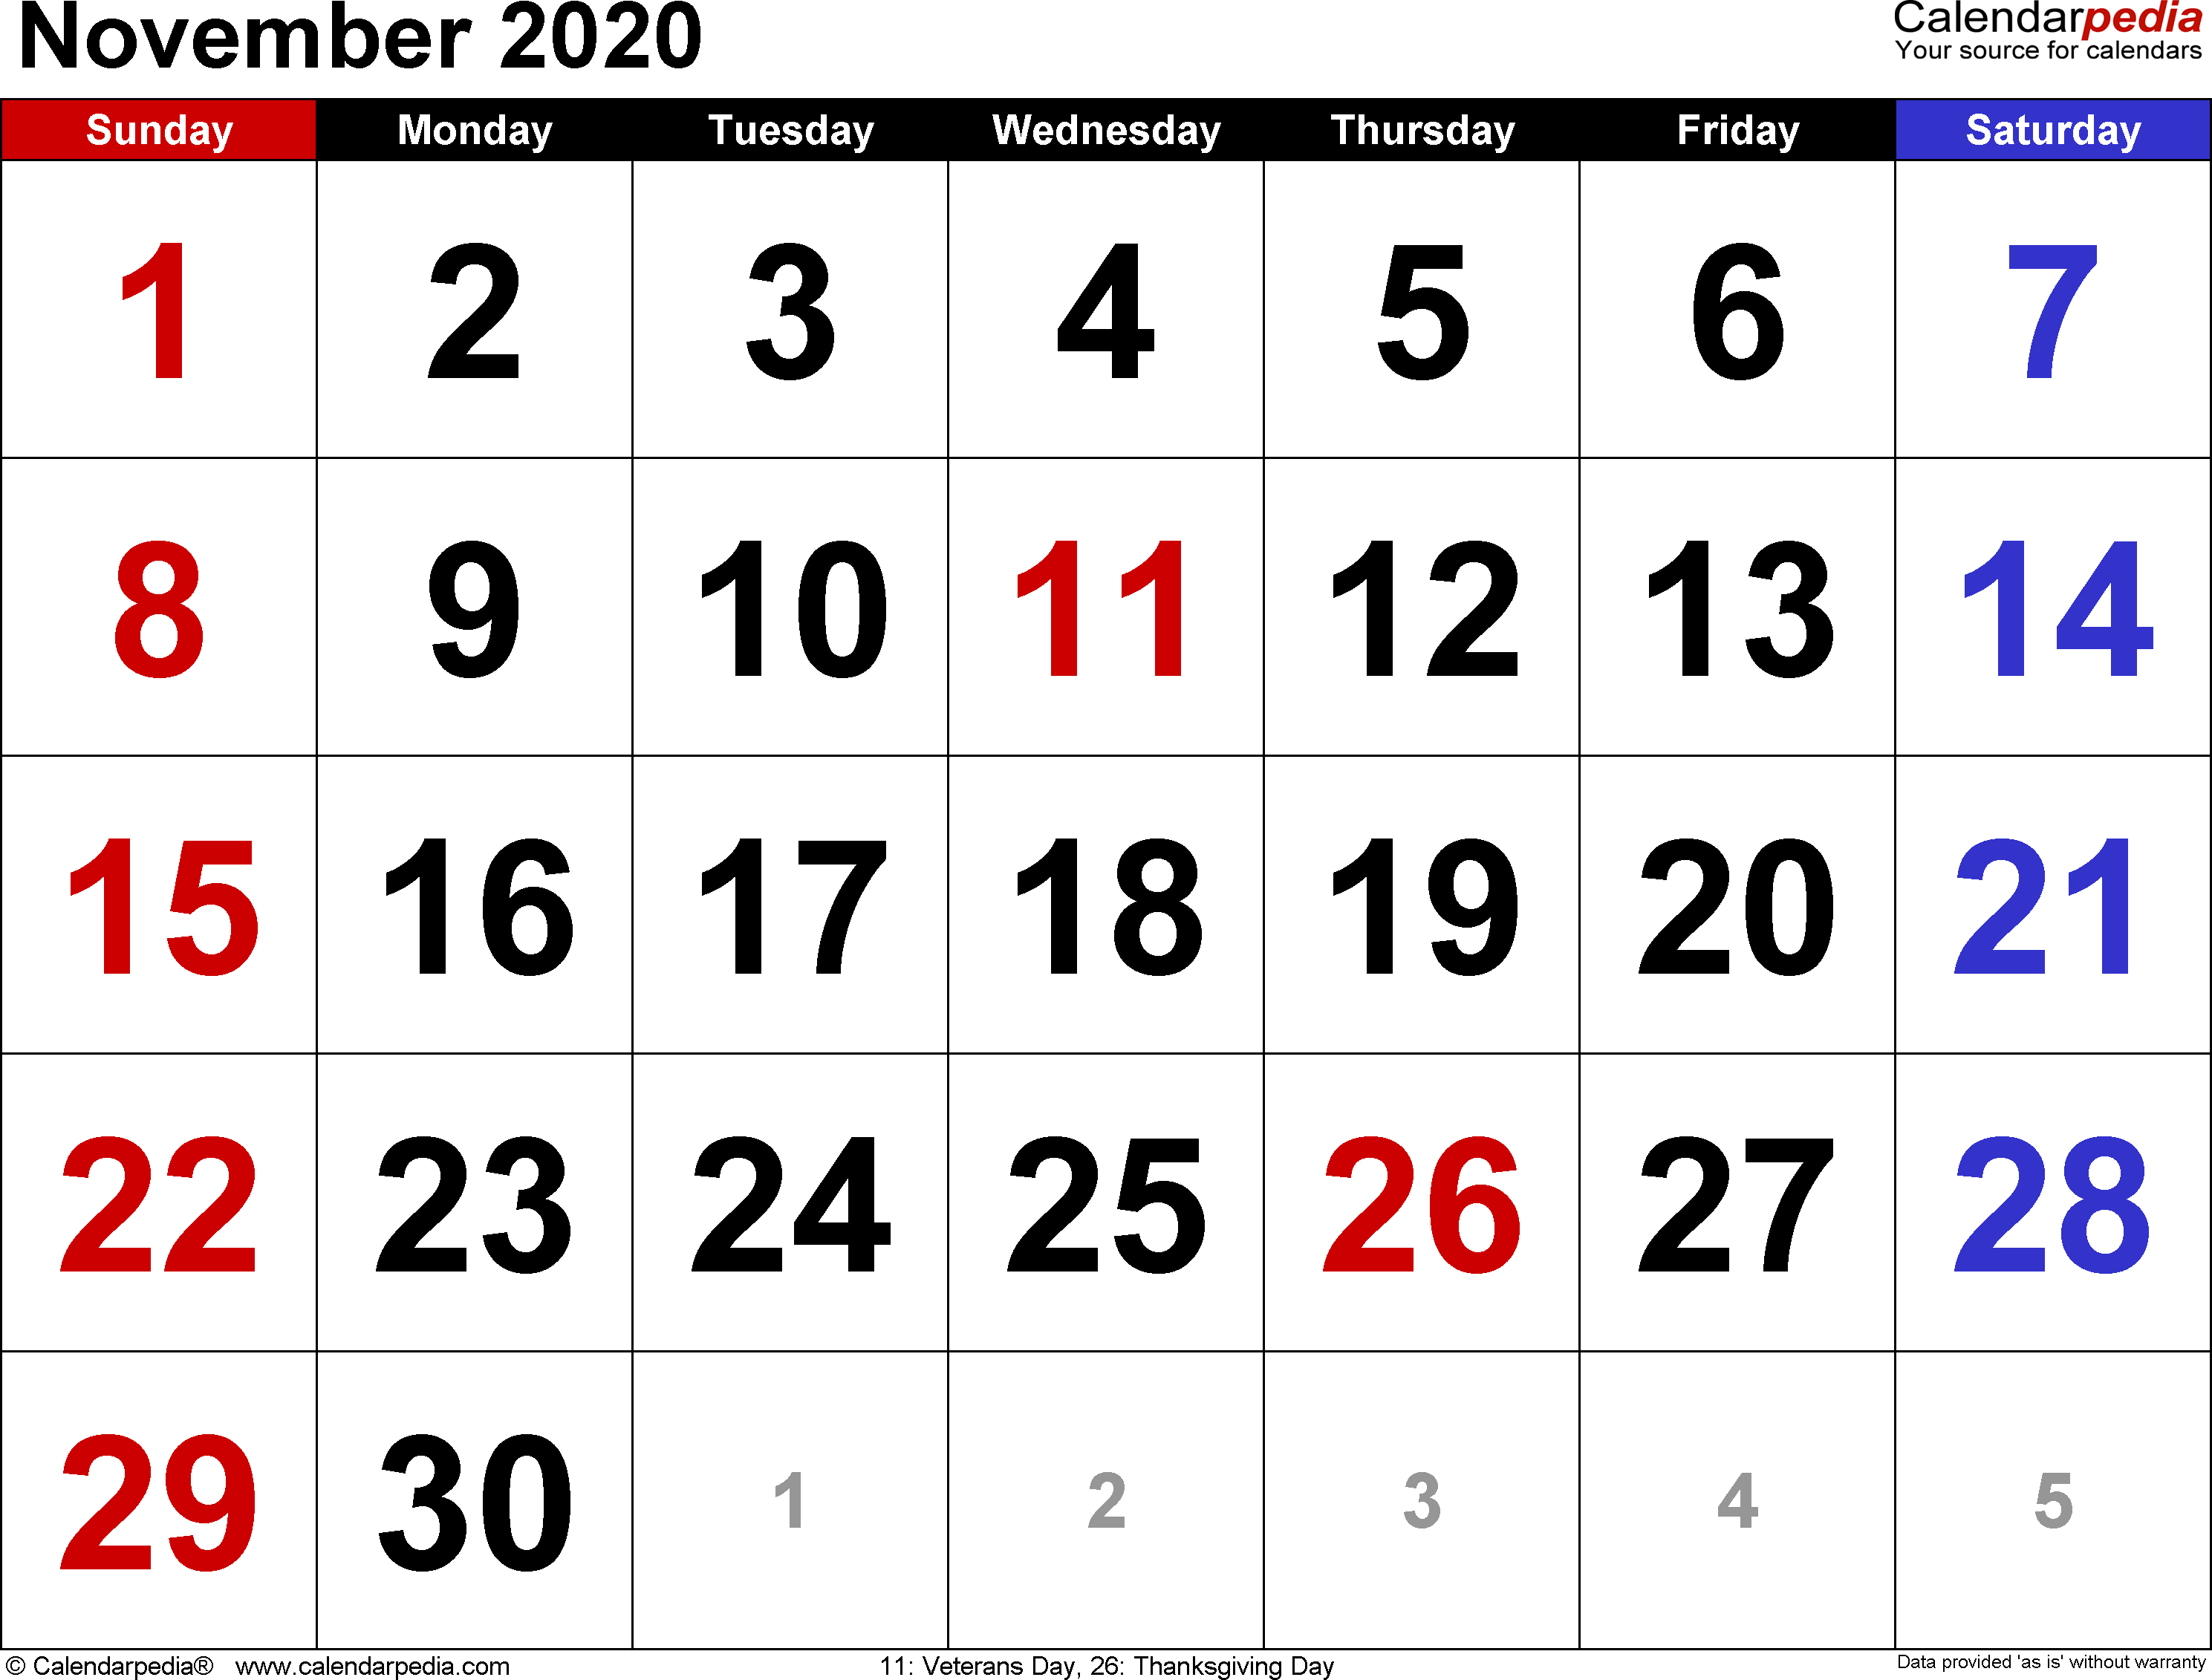 November 2020  Calendar Templates For Word, Excel And Pdf inside Two Month Calendar November December 2020